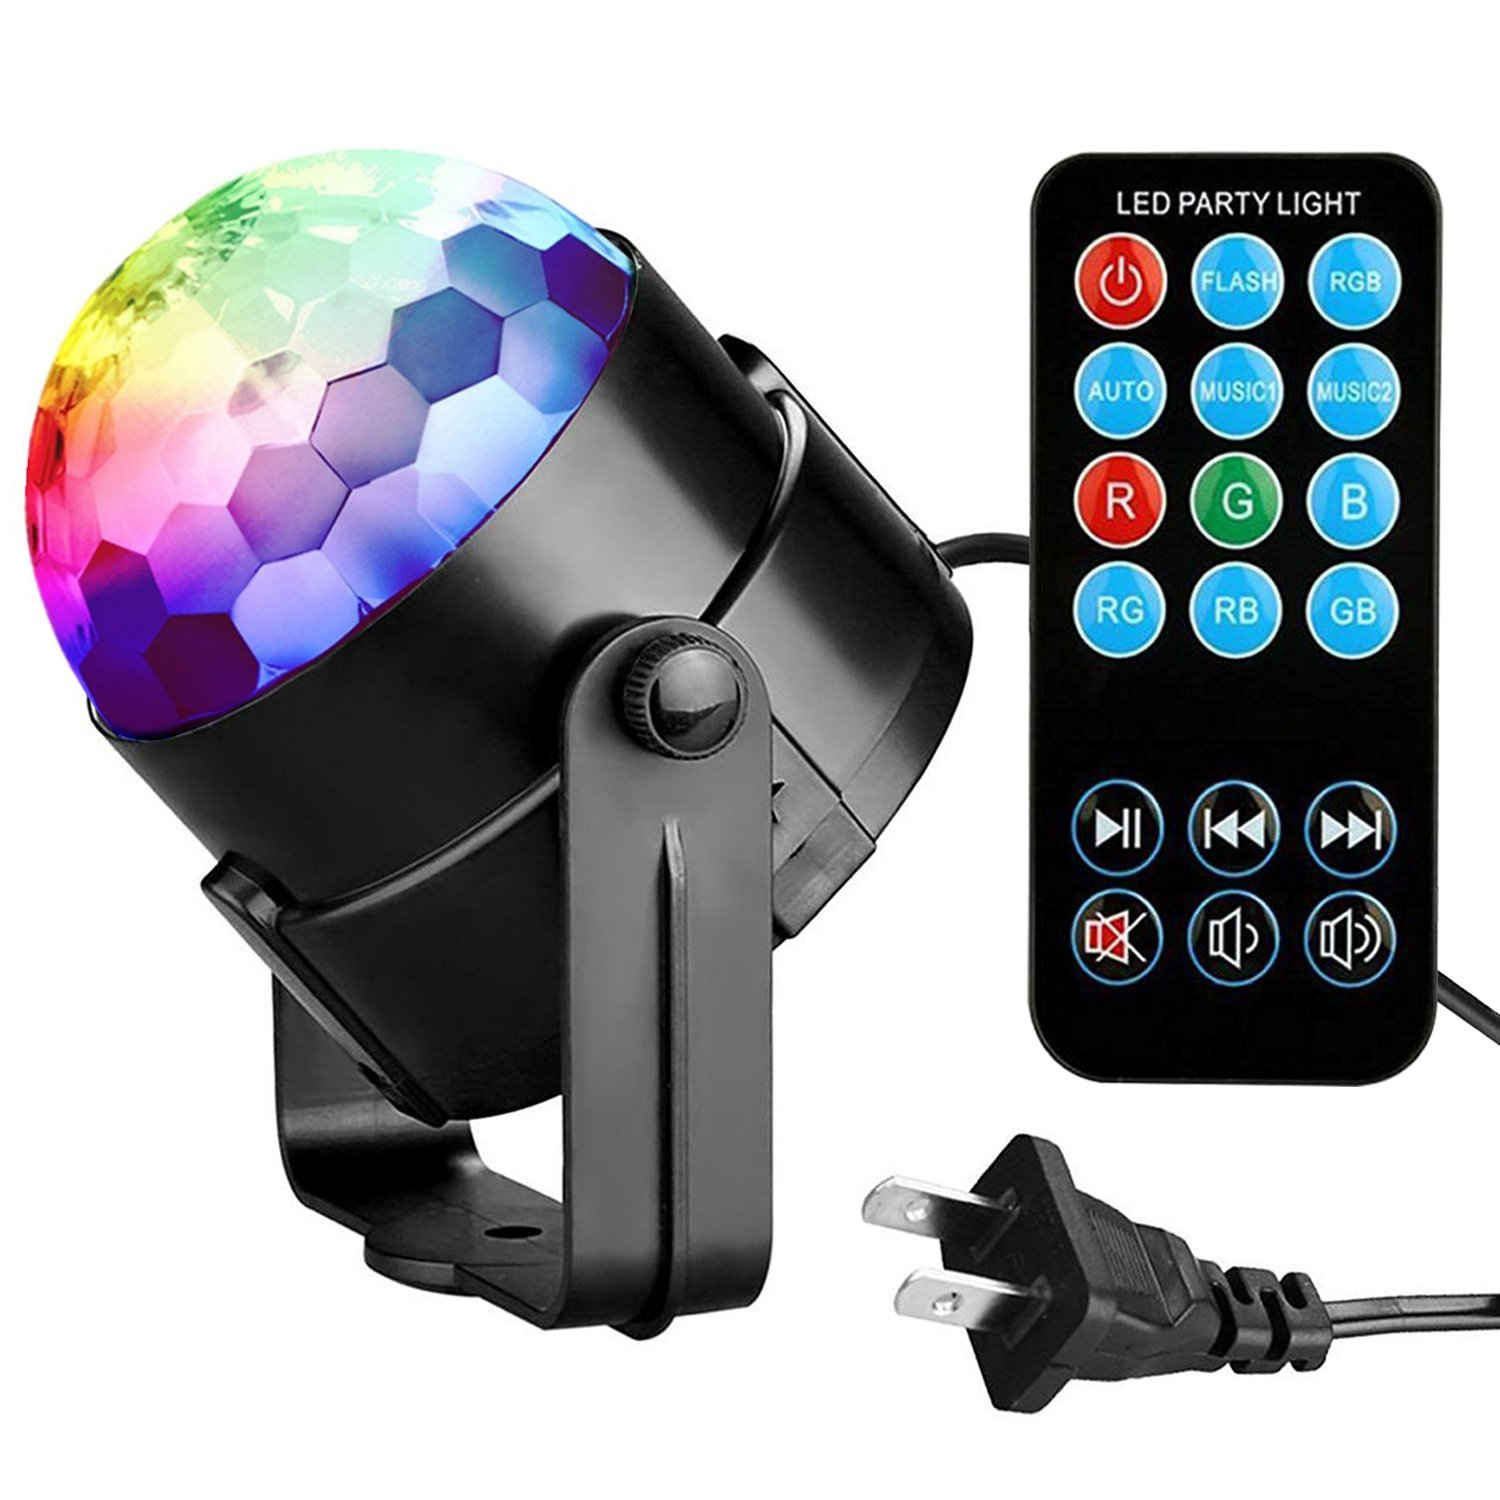 Party Lights Disco Ball Tabiger Disco Lights DJ Light Sound Activated Strobe Light 3W 7 Colors Stage Lights Xmas Karaoke Disco Ball Light for Kids Birthday Home Party Club Pub Wedding with Remote